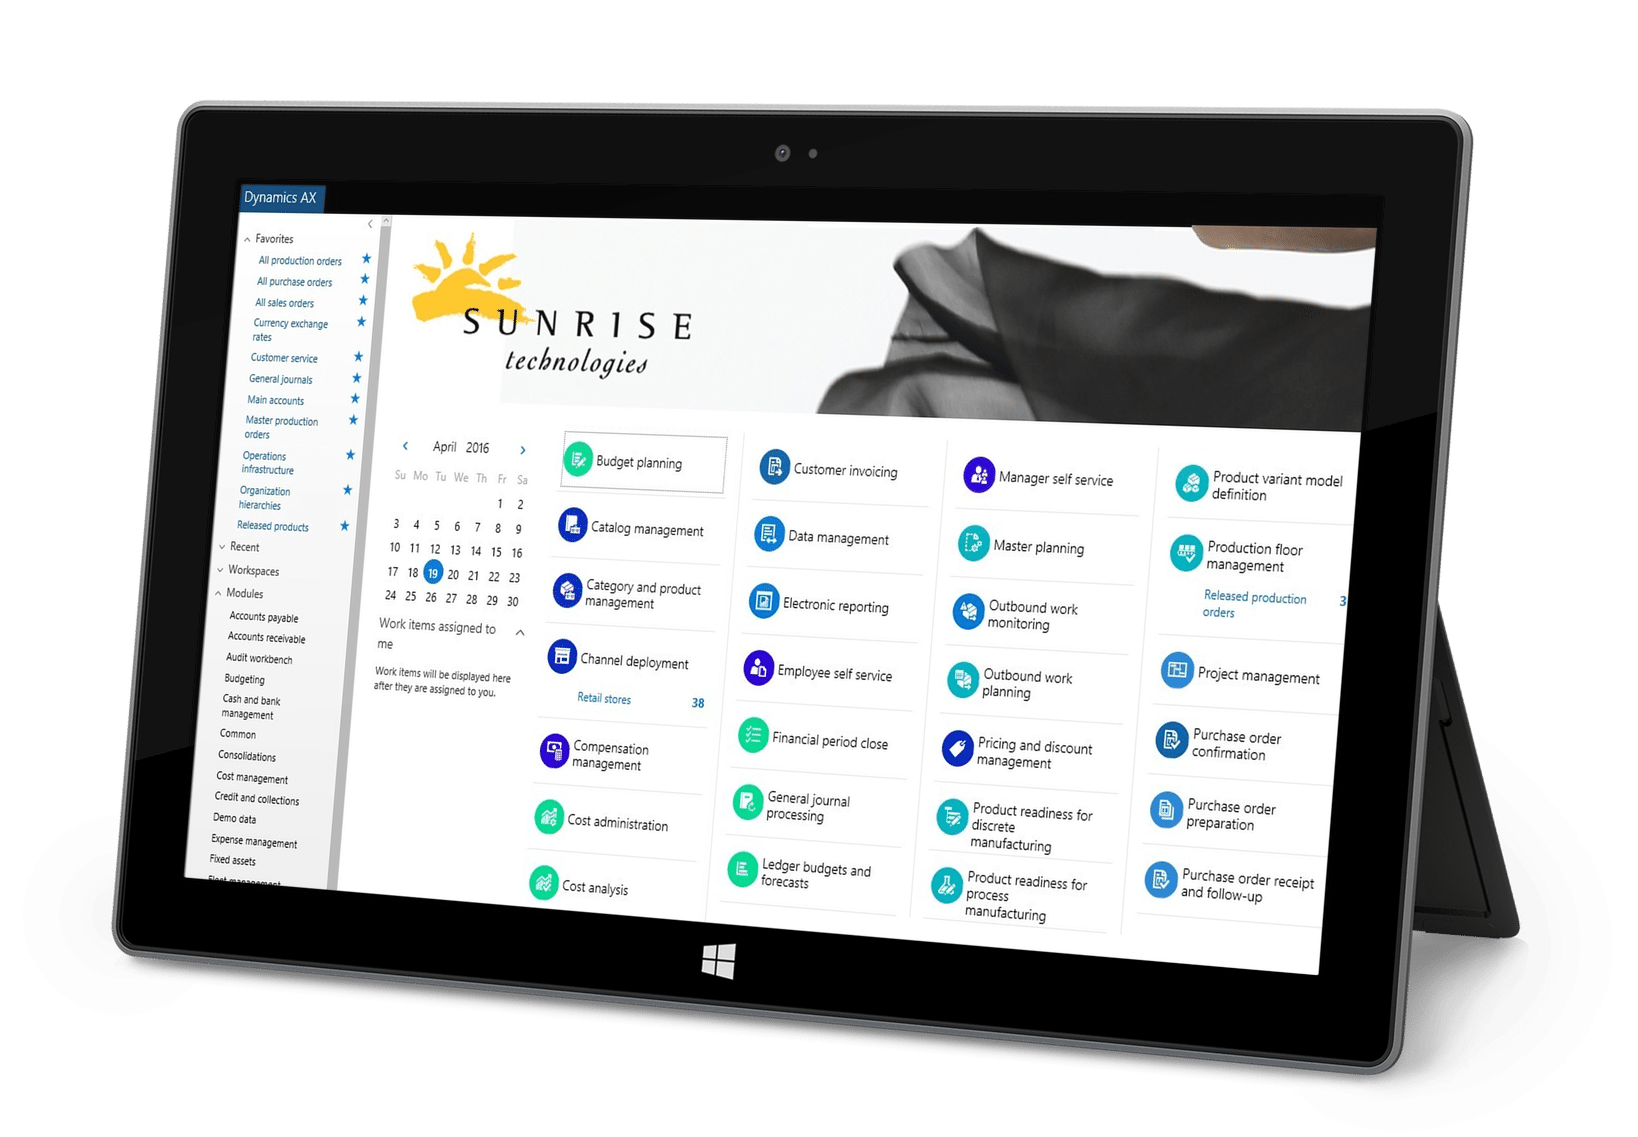 Sunrise Microsoft Dynamics AX Surface